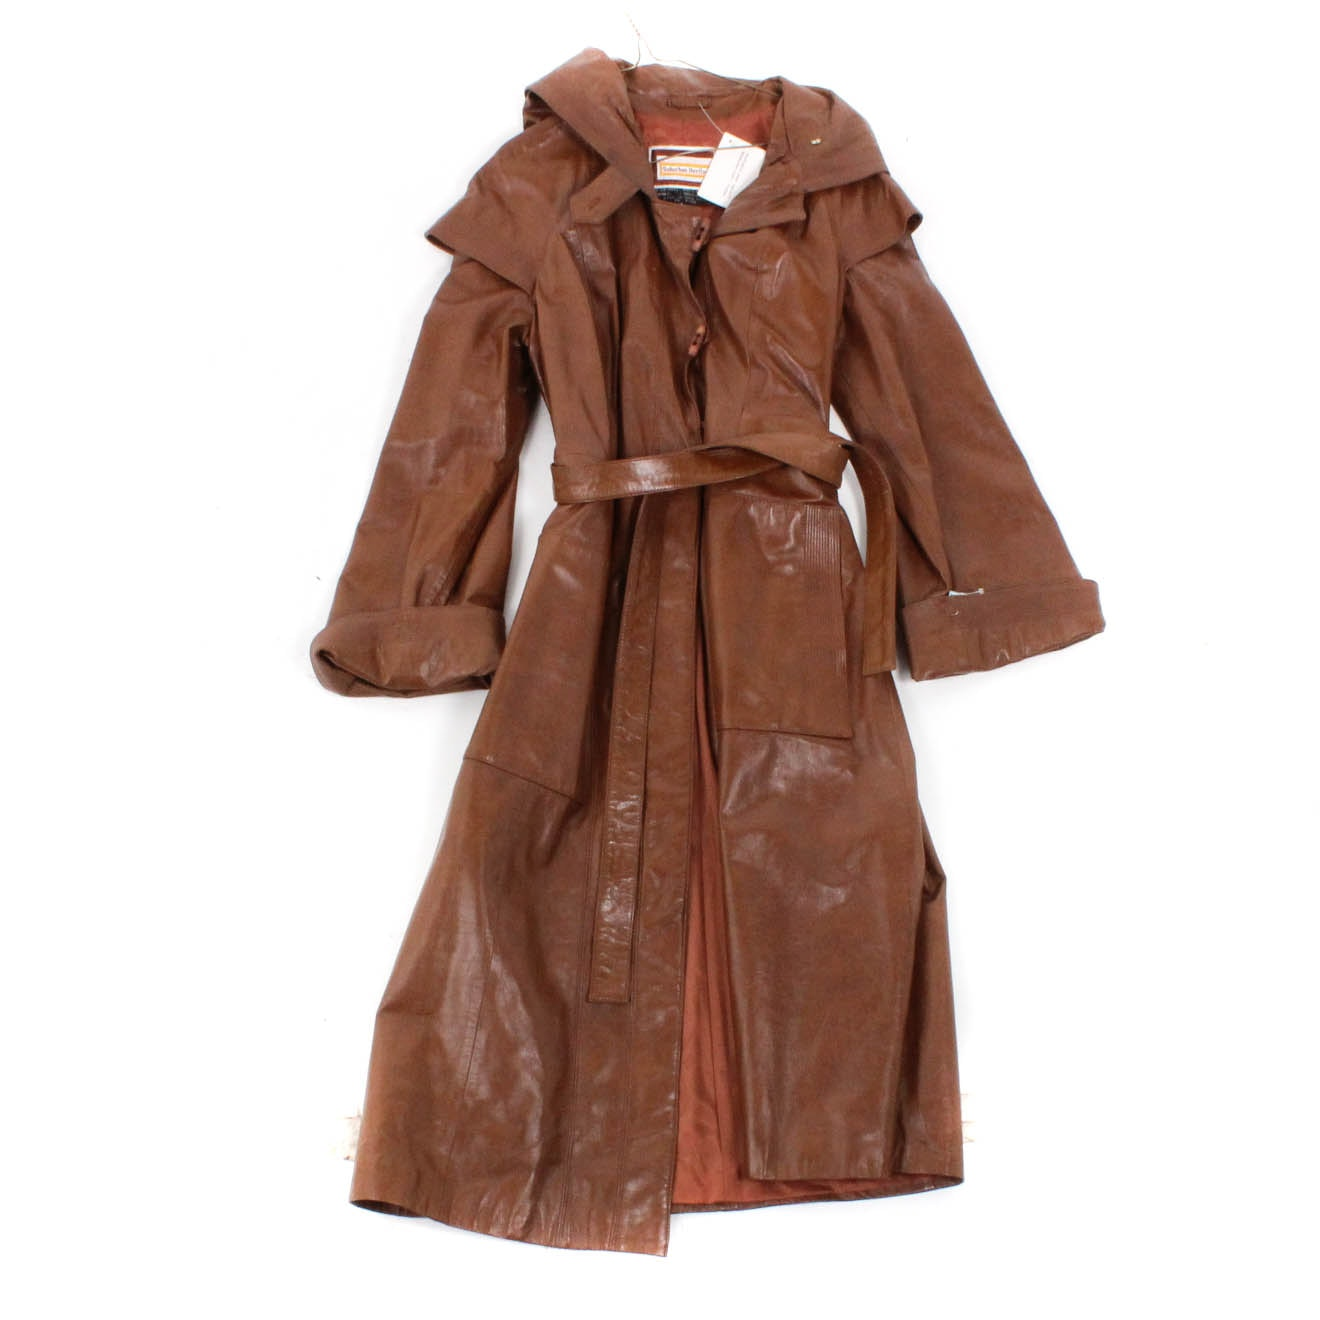 Women's Vintage Leather Coat